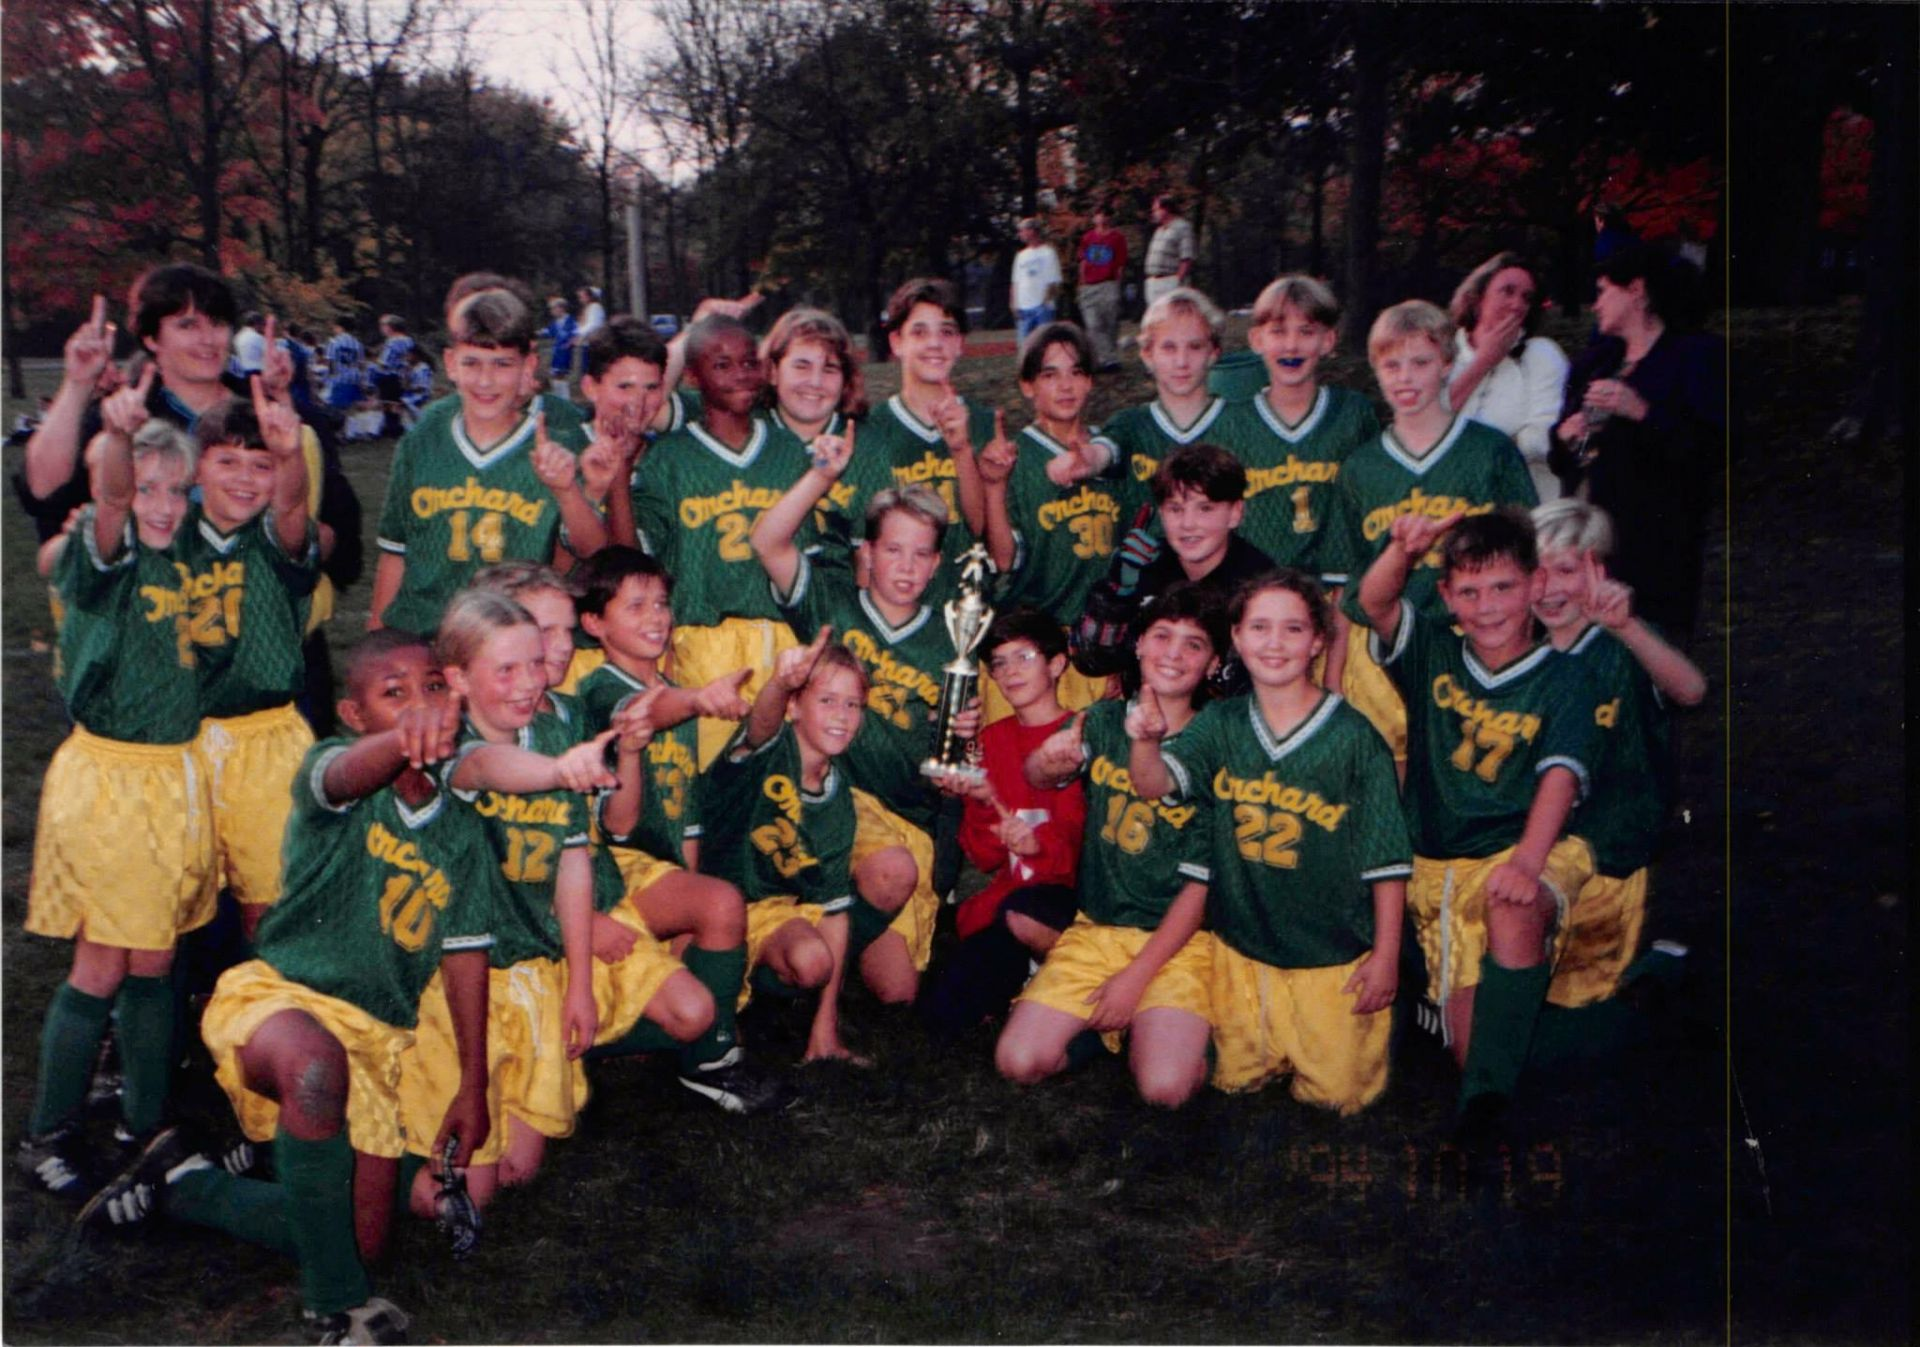 Chris (pictured top row, number 30) with his Orchard teammates after winning the IISL Soccer Championship.